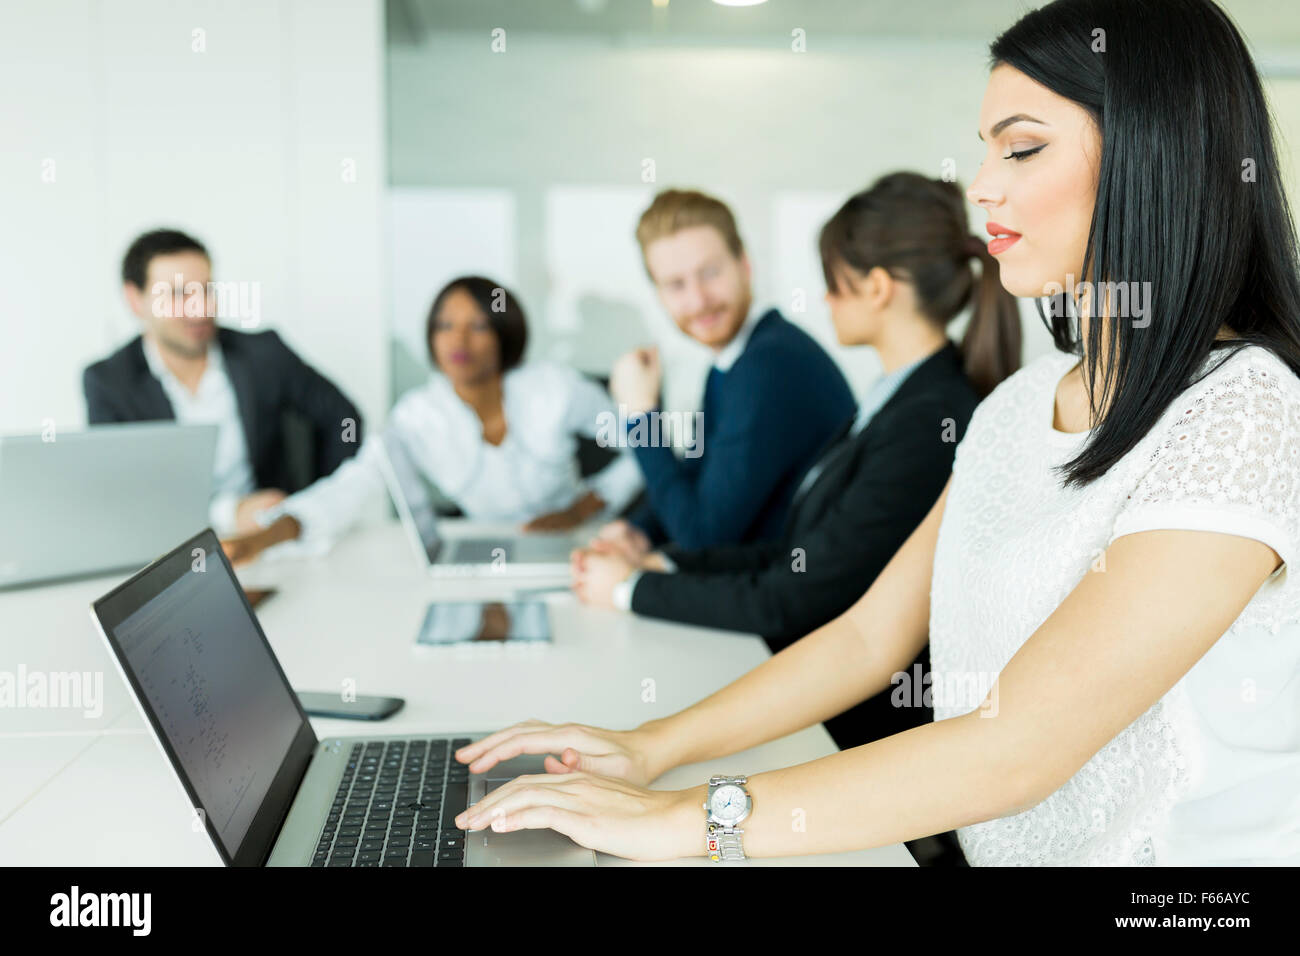 Businesswoman working on a laptop in an office during brainstorming Stock Photo